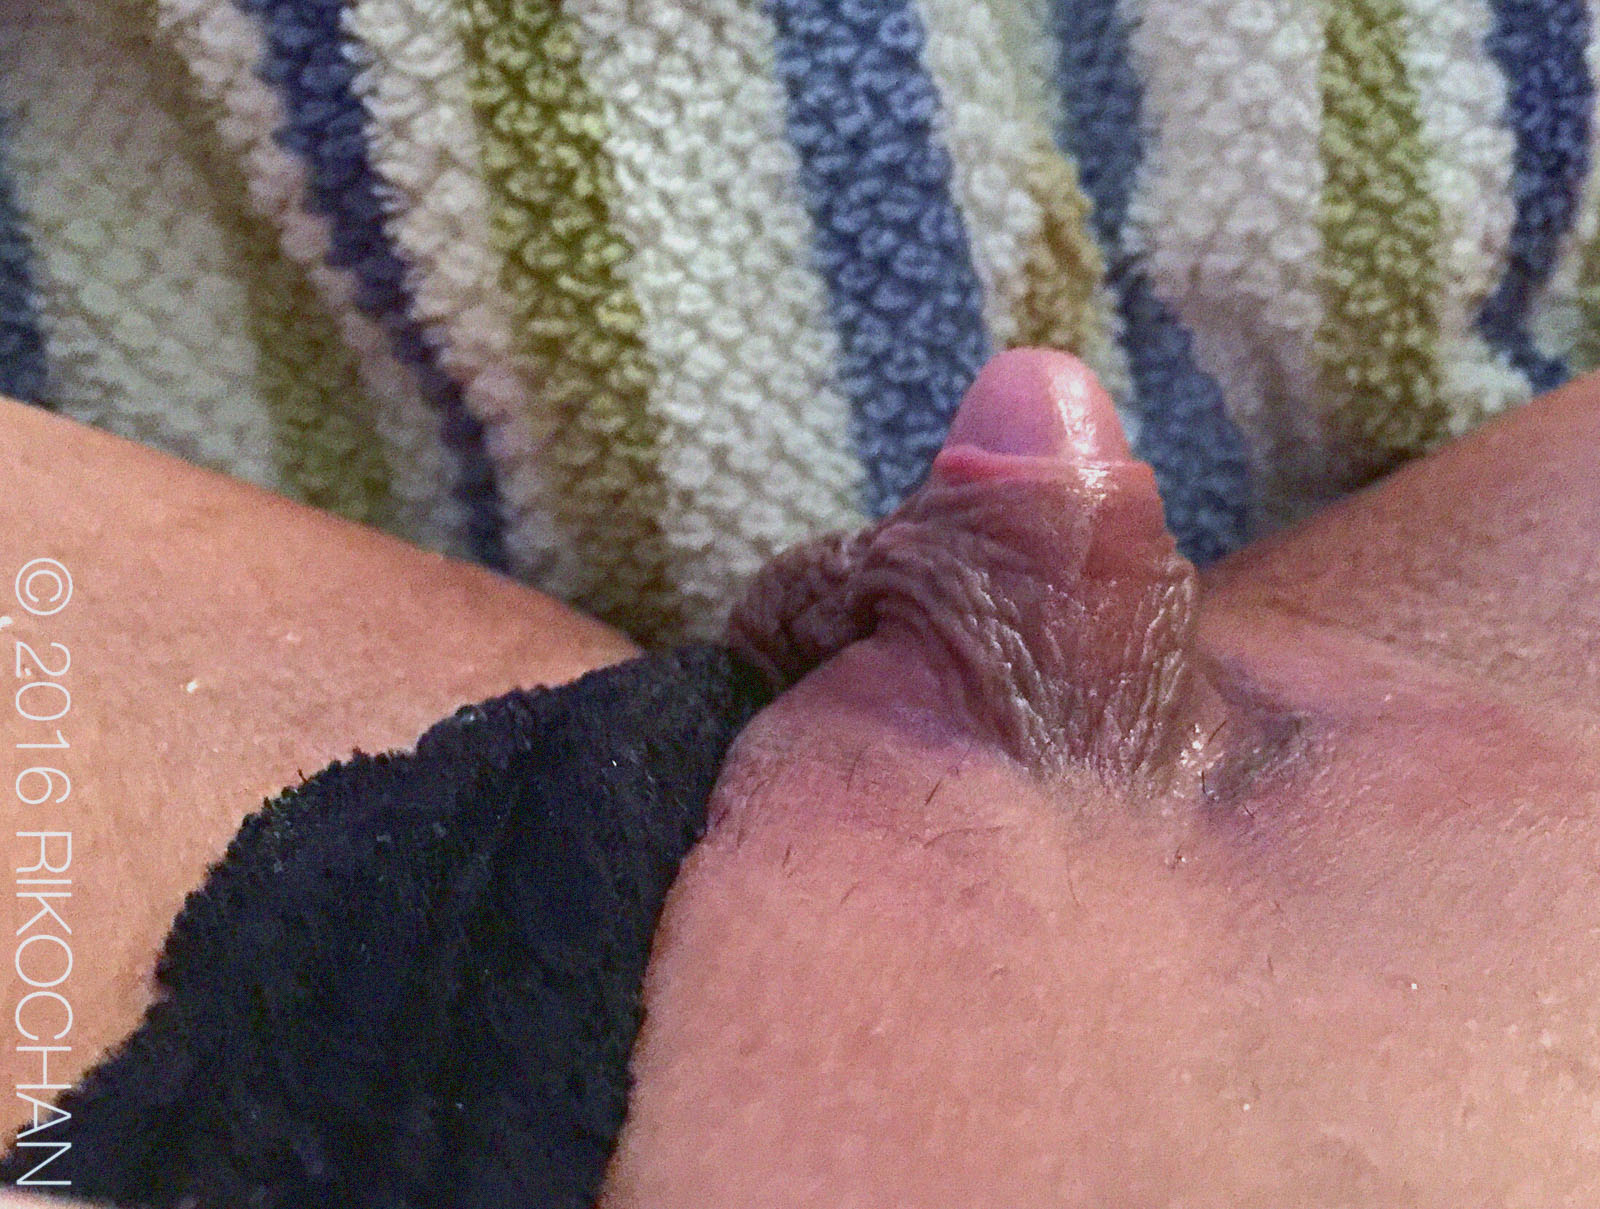 Emma's big vagina close view porno